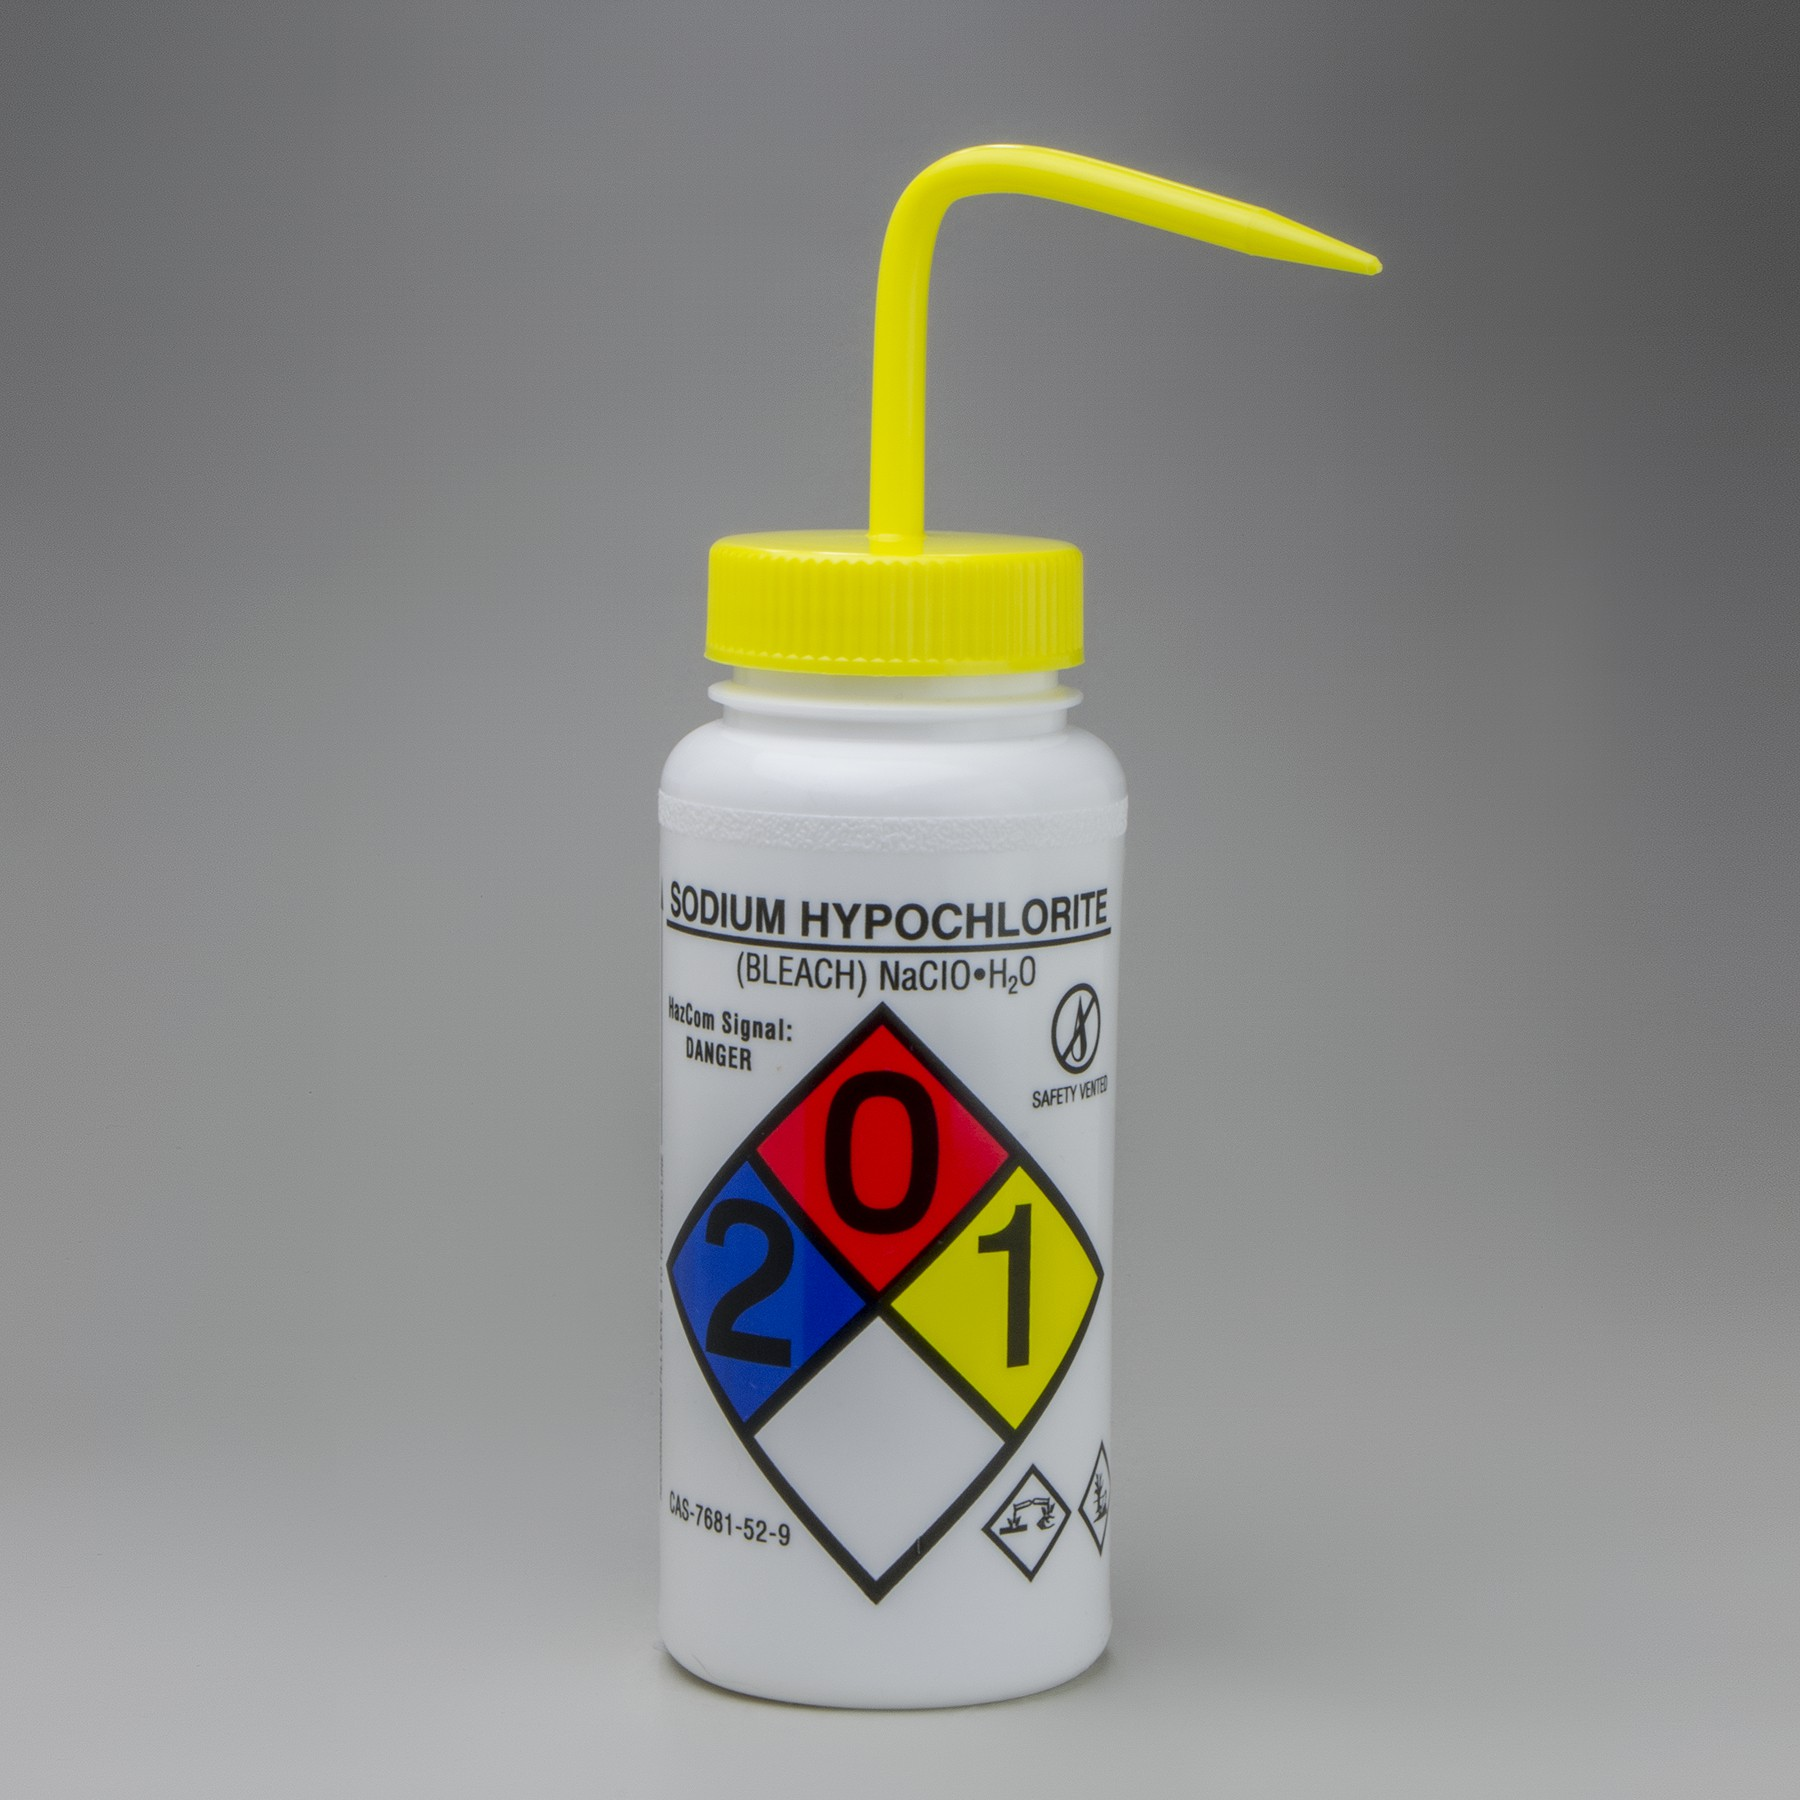 sodium hypochlorite in bleach 2 Bleach is the generic name for any chemical product which is used industrially and domestically to whiten clothes, lighten hair color and remove stainsit often refers specifically to a dilute solution of sodium hypochlorite, also called liquid bleach.